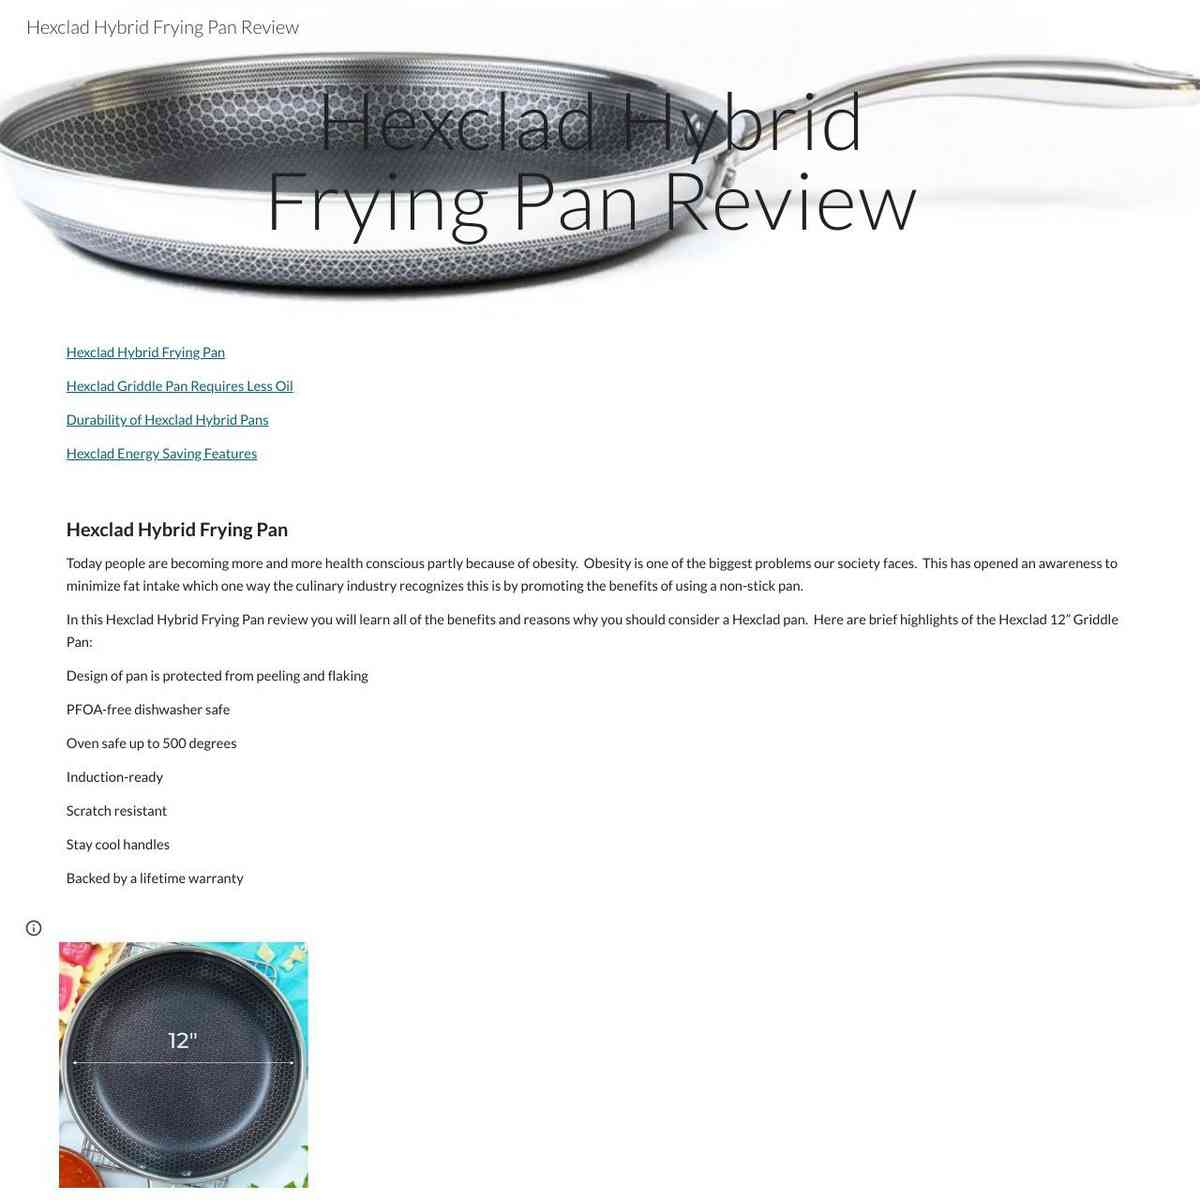 Hexclad Hybrid Frying Pan Review